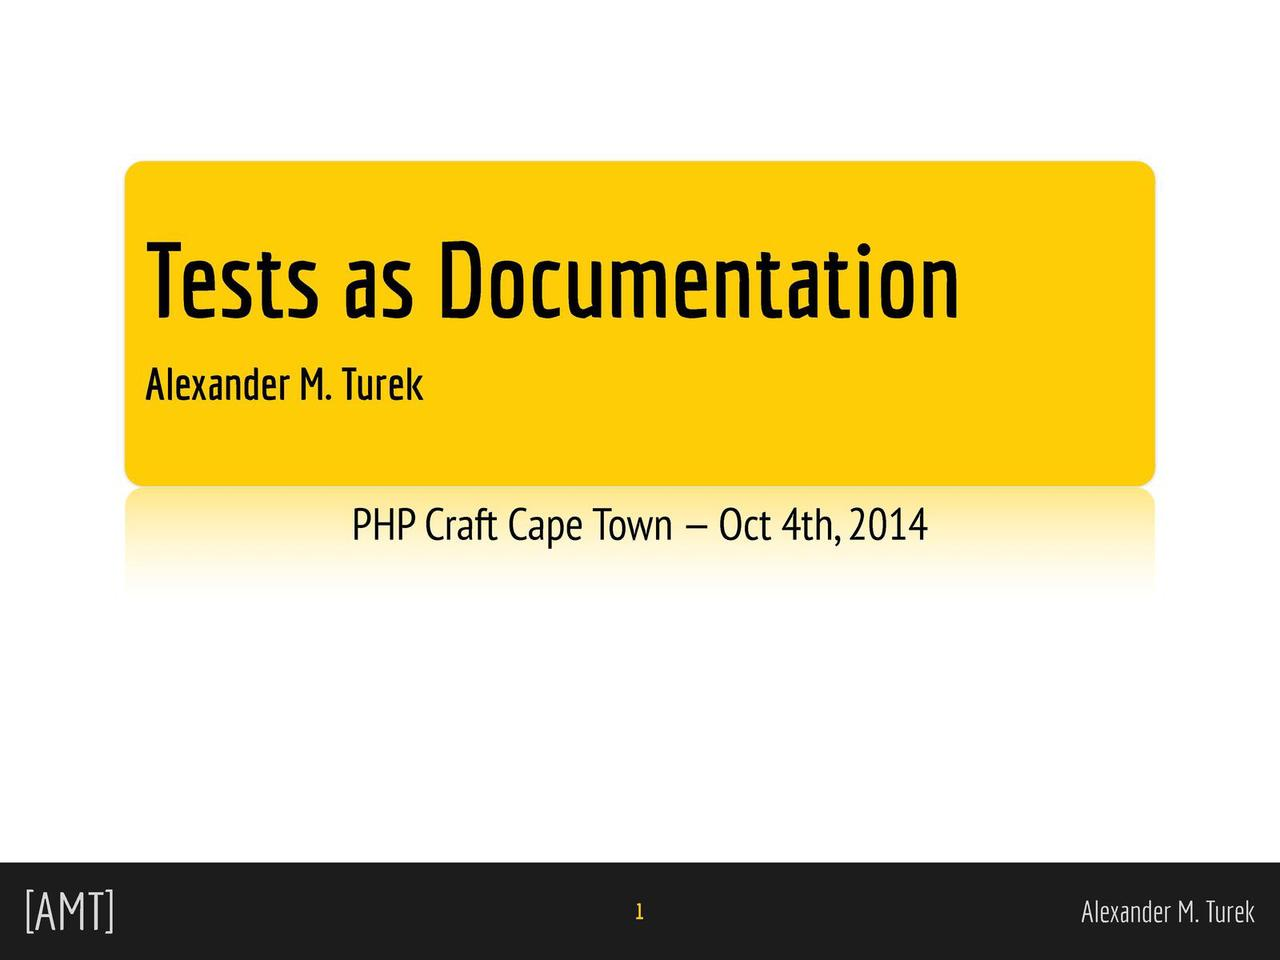 Tests as Documentation (PHP Craft Cape Town 2014)